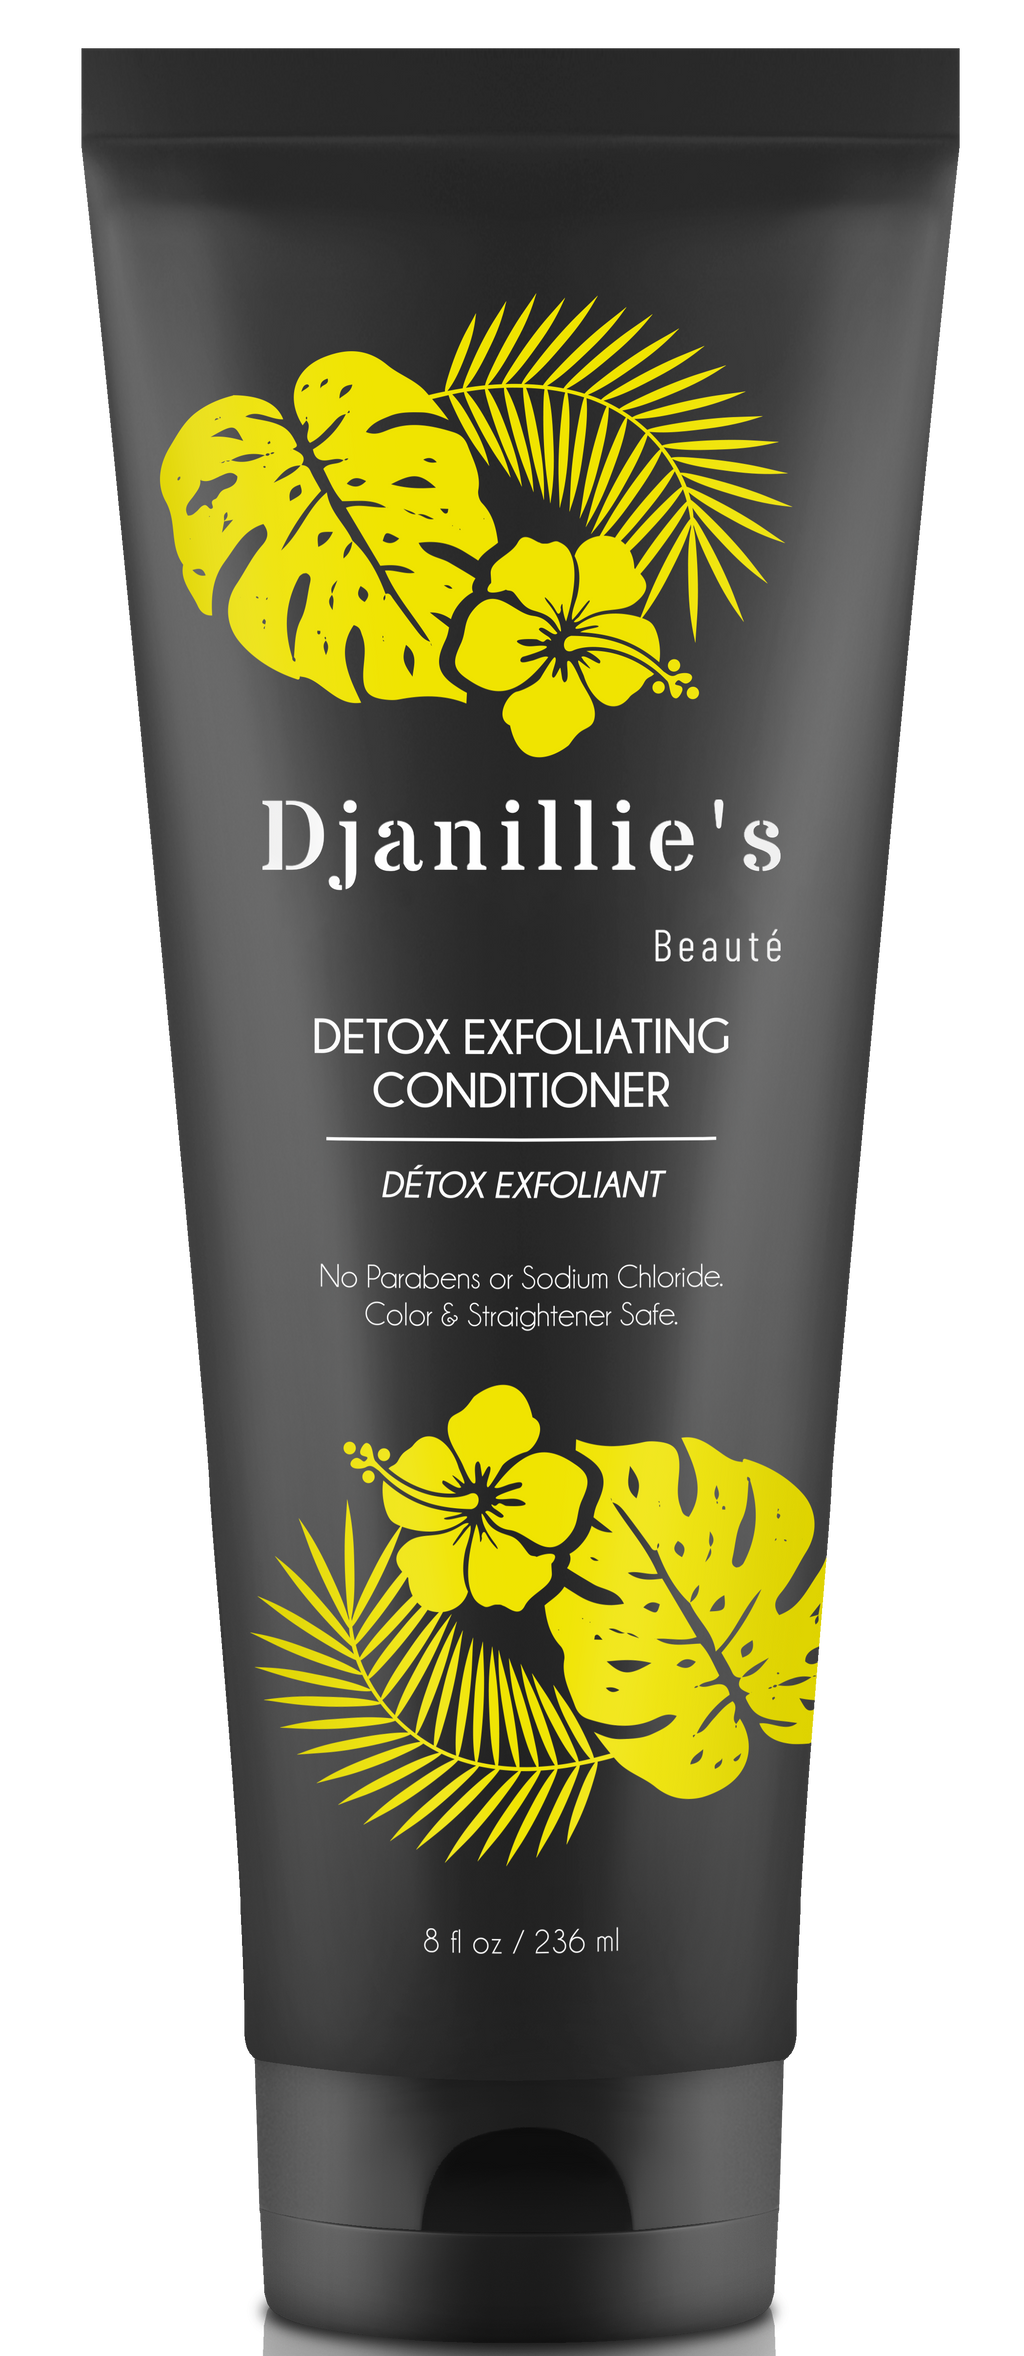 Detox Exfoliating / Détox Exfoliant-Conditioner